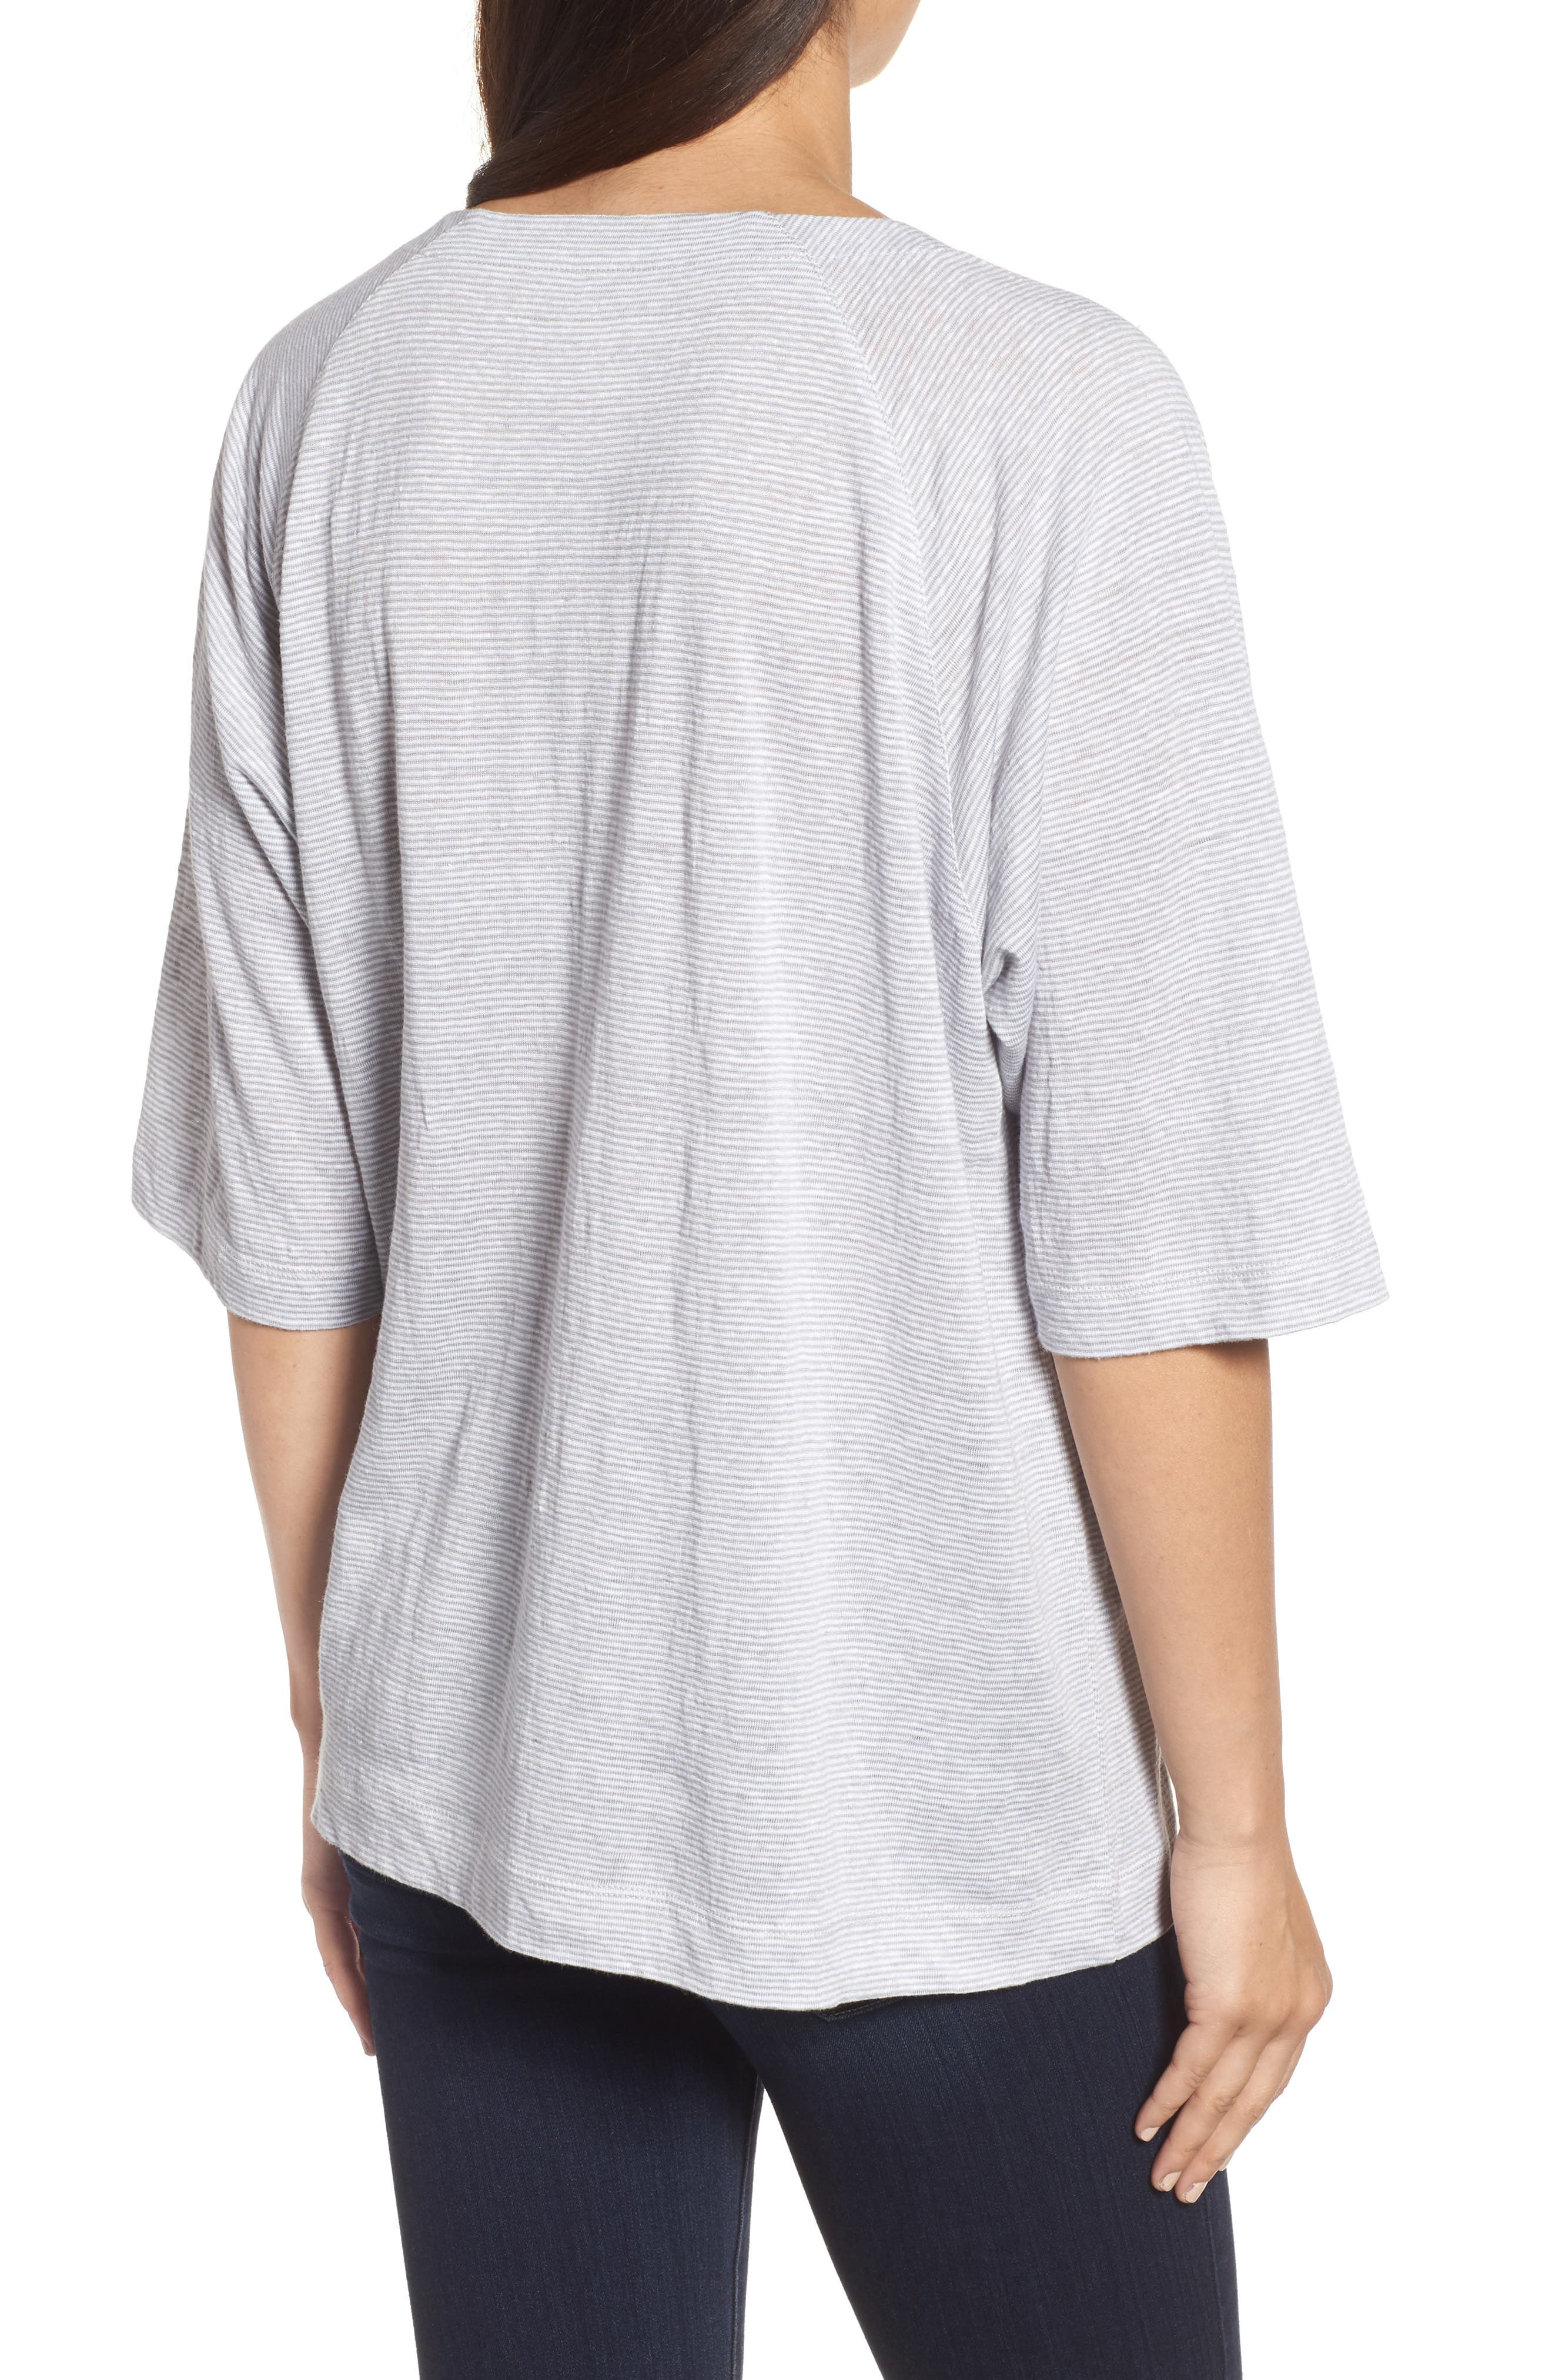 Organic Linen V-Neck Box Tee,                             Alternate thumbnail 2, color,                             022